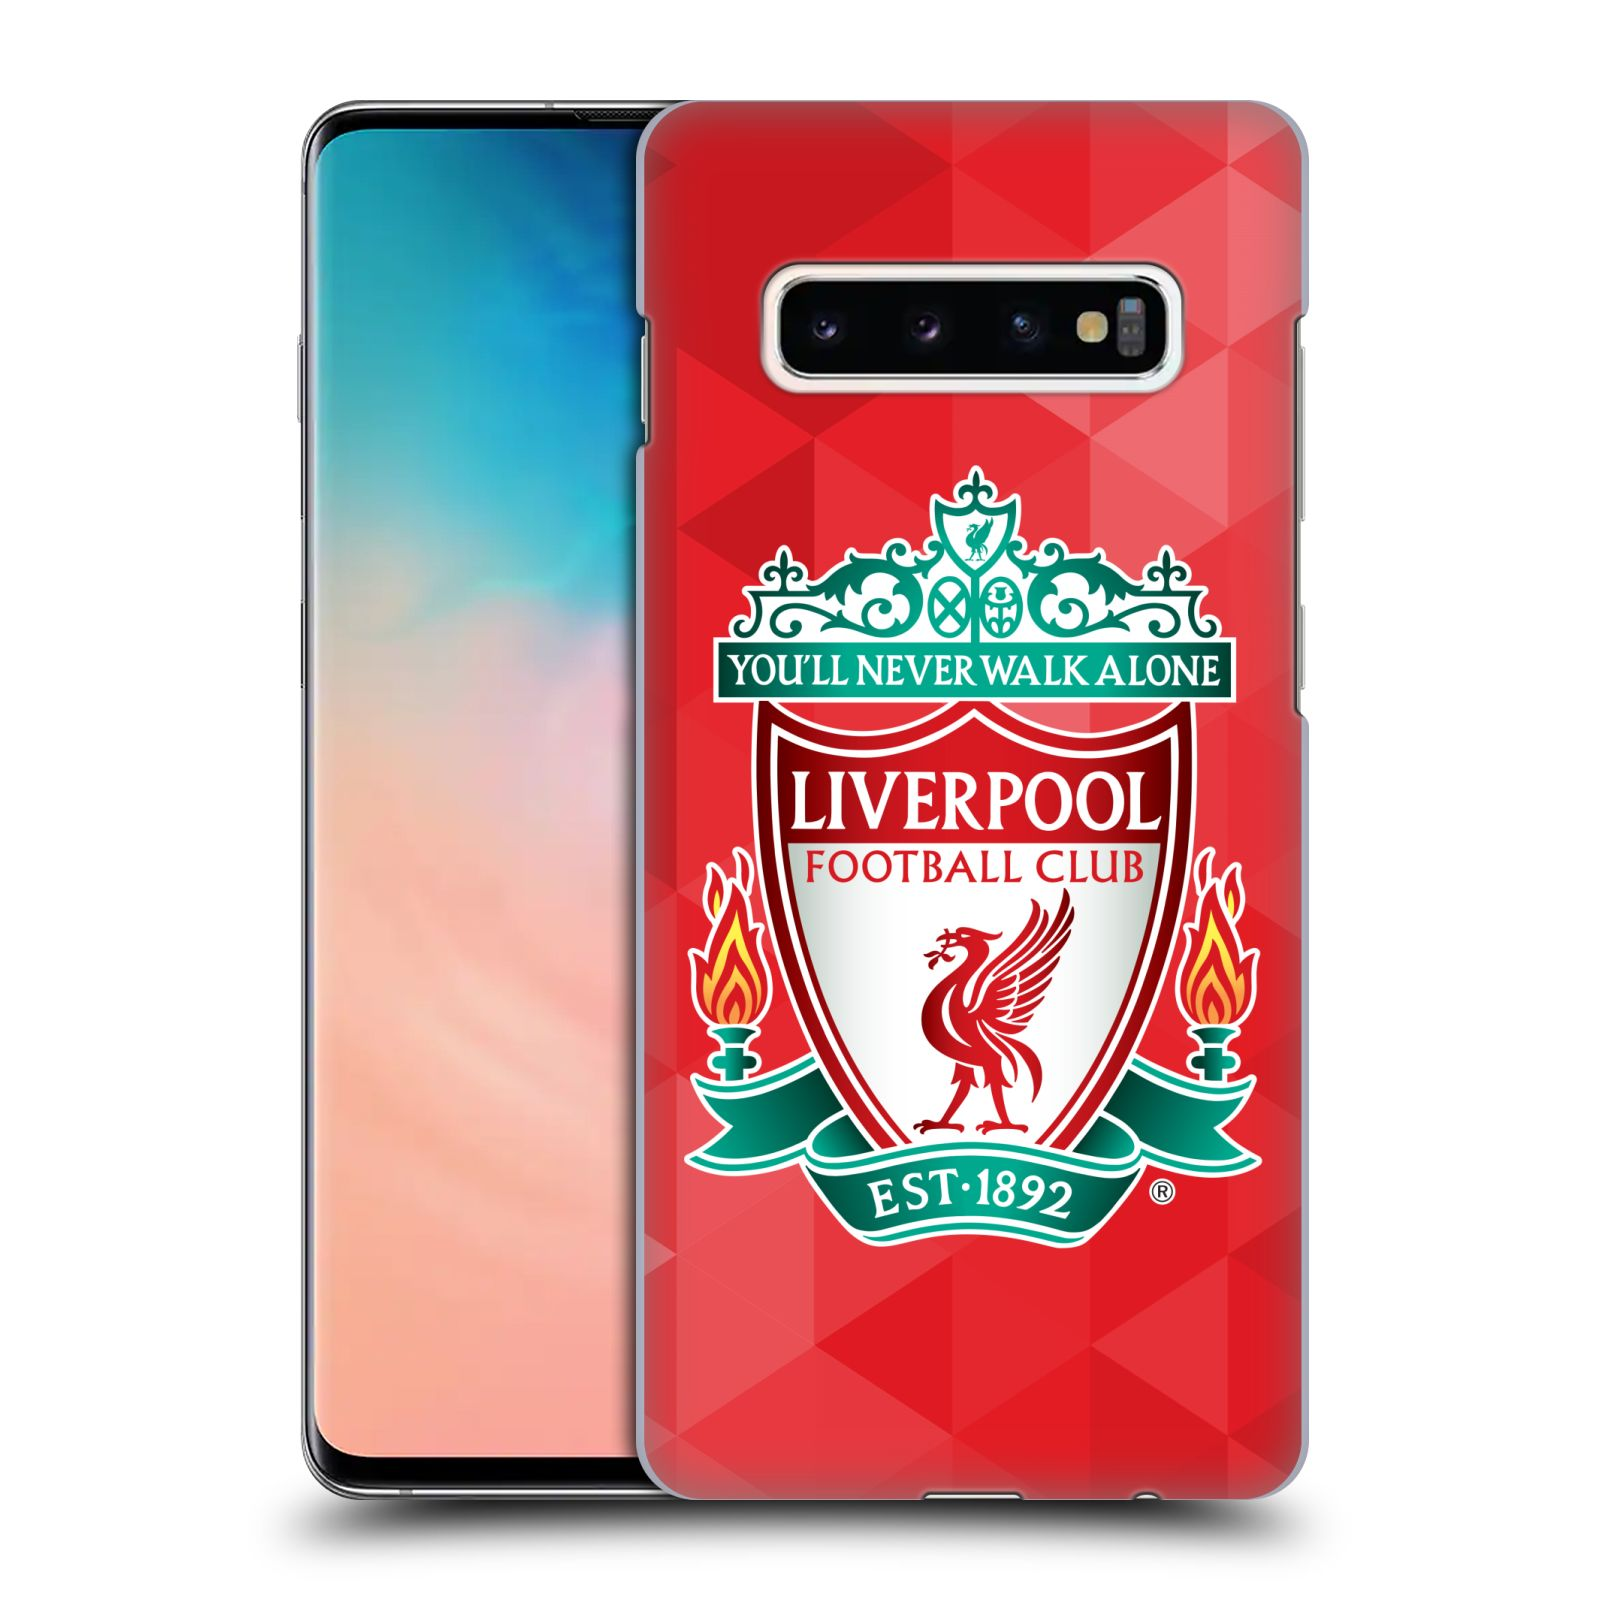 Plastové pouzdro na mobil Samsung Galaxy S10 Plus - Head Case - ZNAK LIVERPOOL FC OFFICIAL GEOMETRIC RED